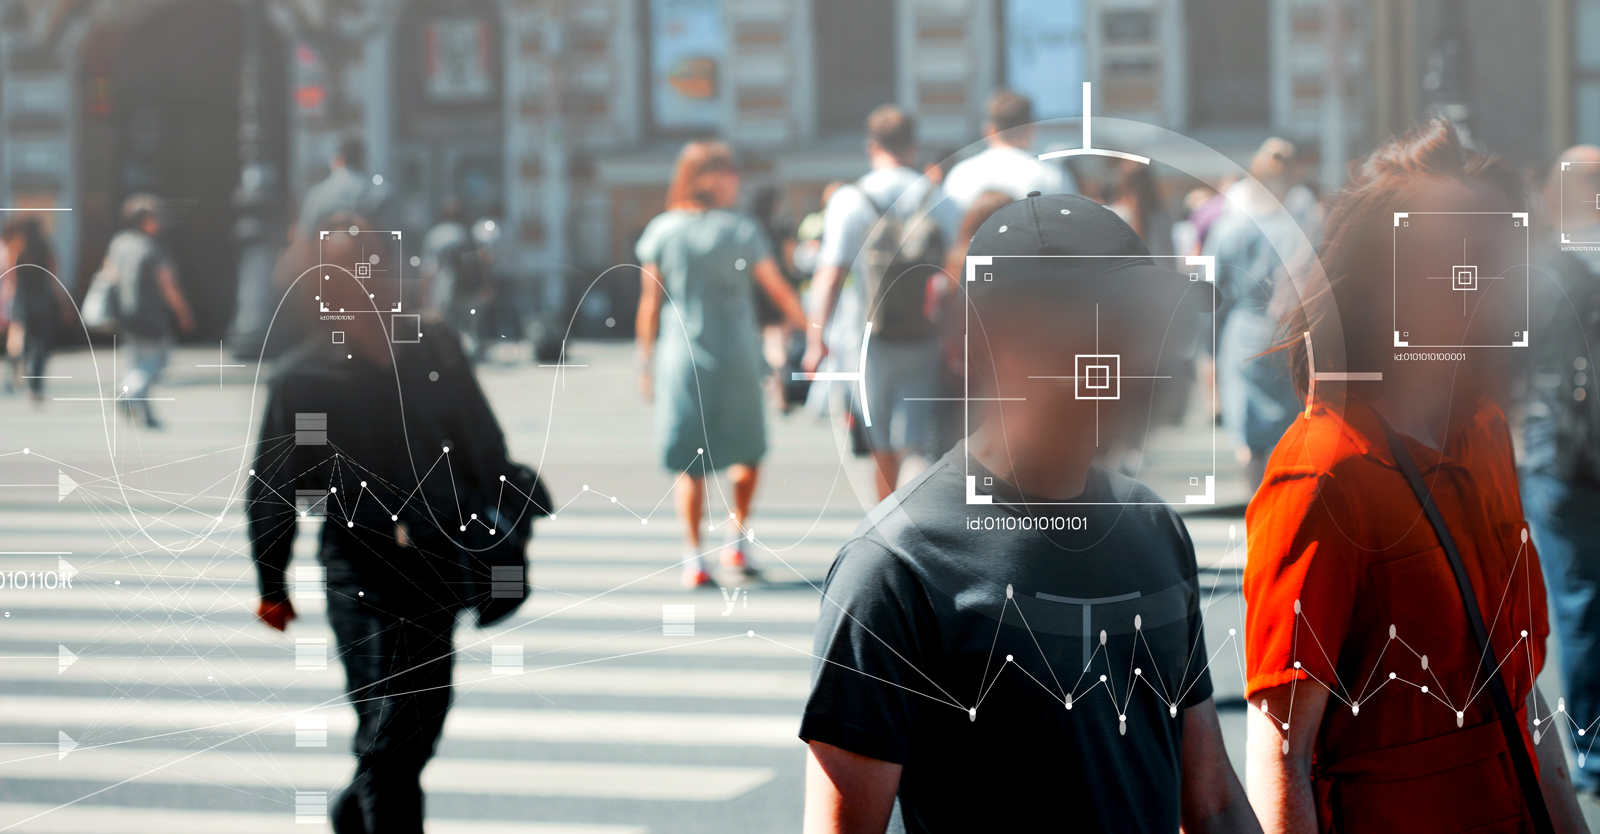 10-federal-agencies-plan-to-greatly-expand-reliance-on-facial-recognition-surveillance,-critics-outraged